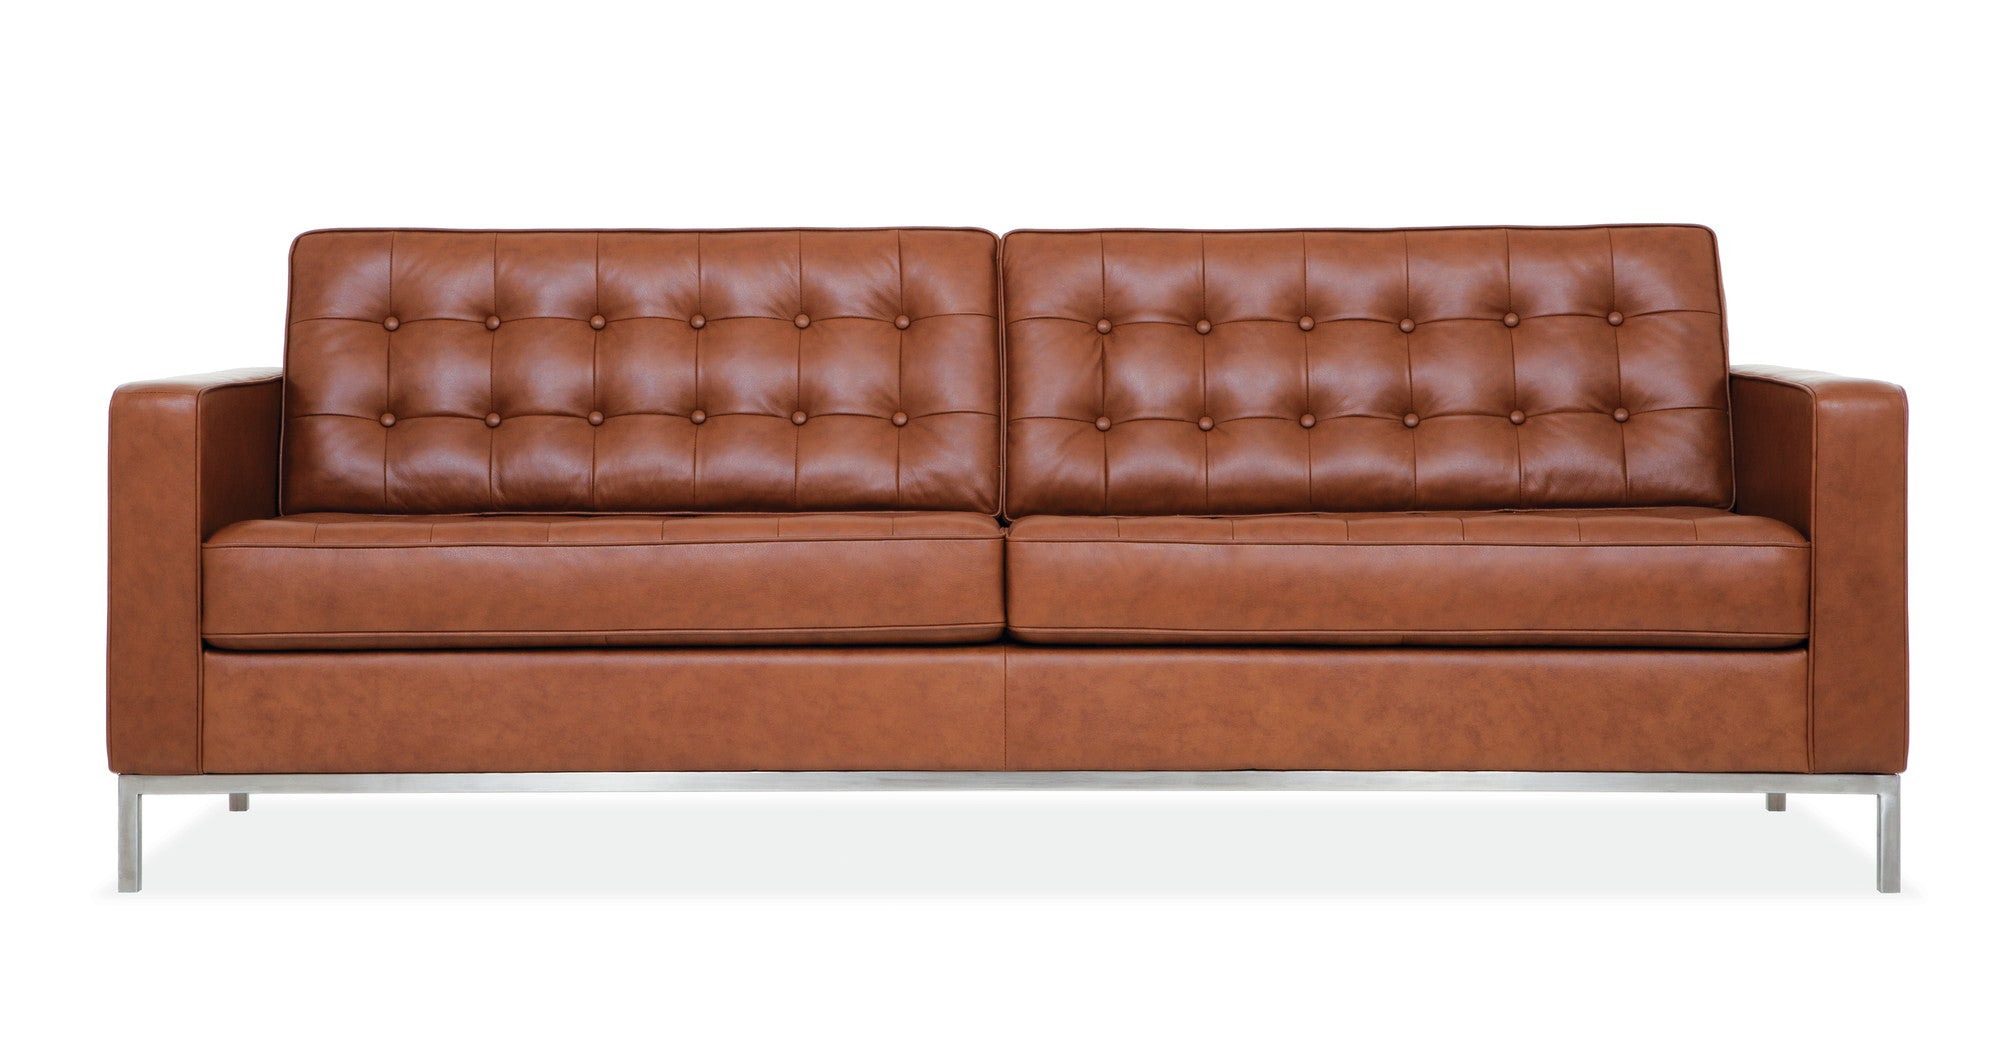 EQ3 Reverie Leather Convertible Loveseat at AllModern on astralriles.com